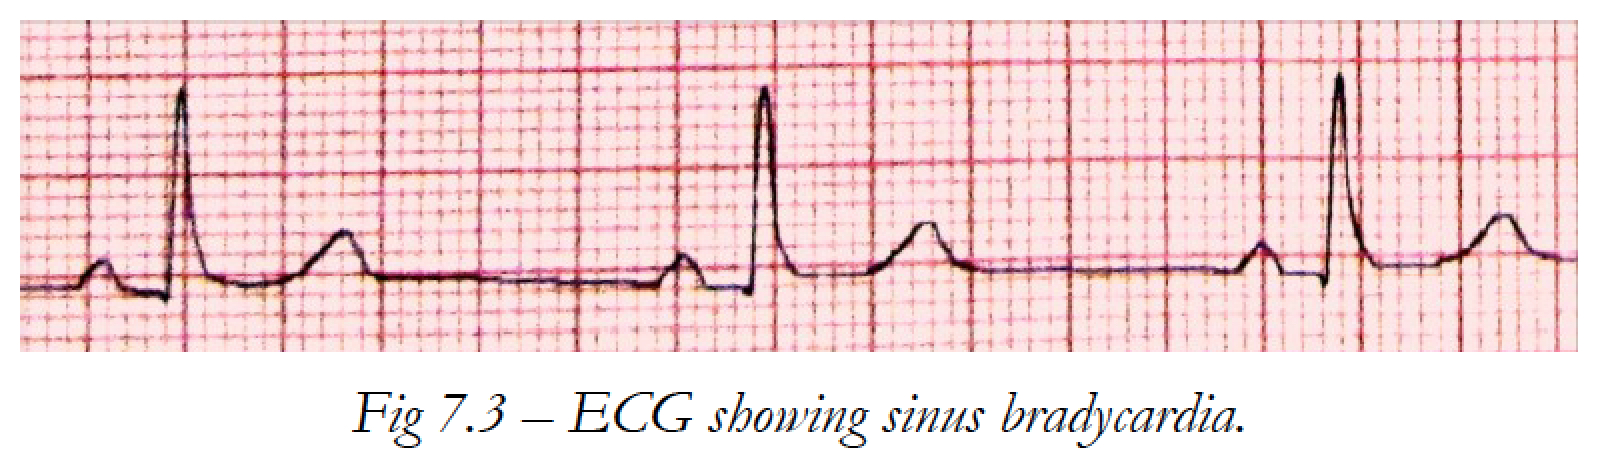 ECG showing sinus brad...